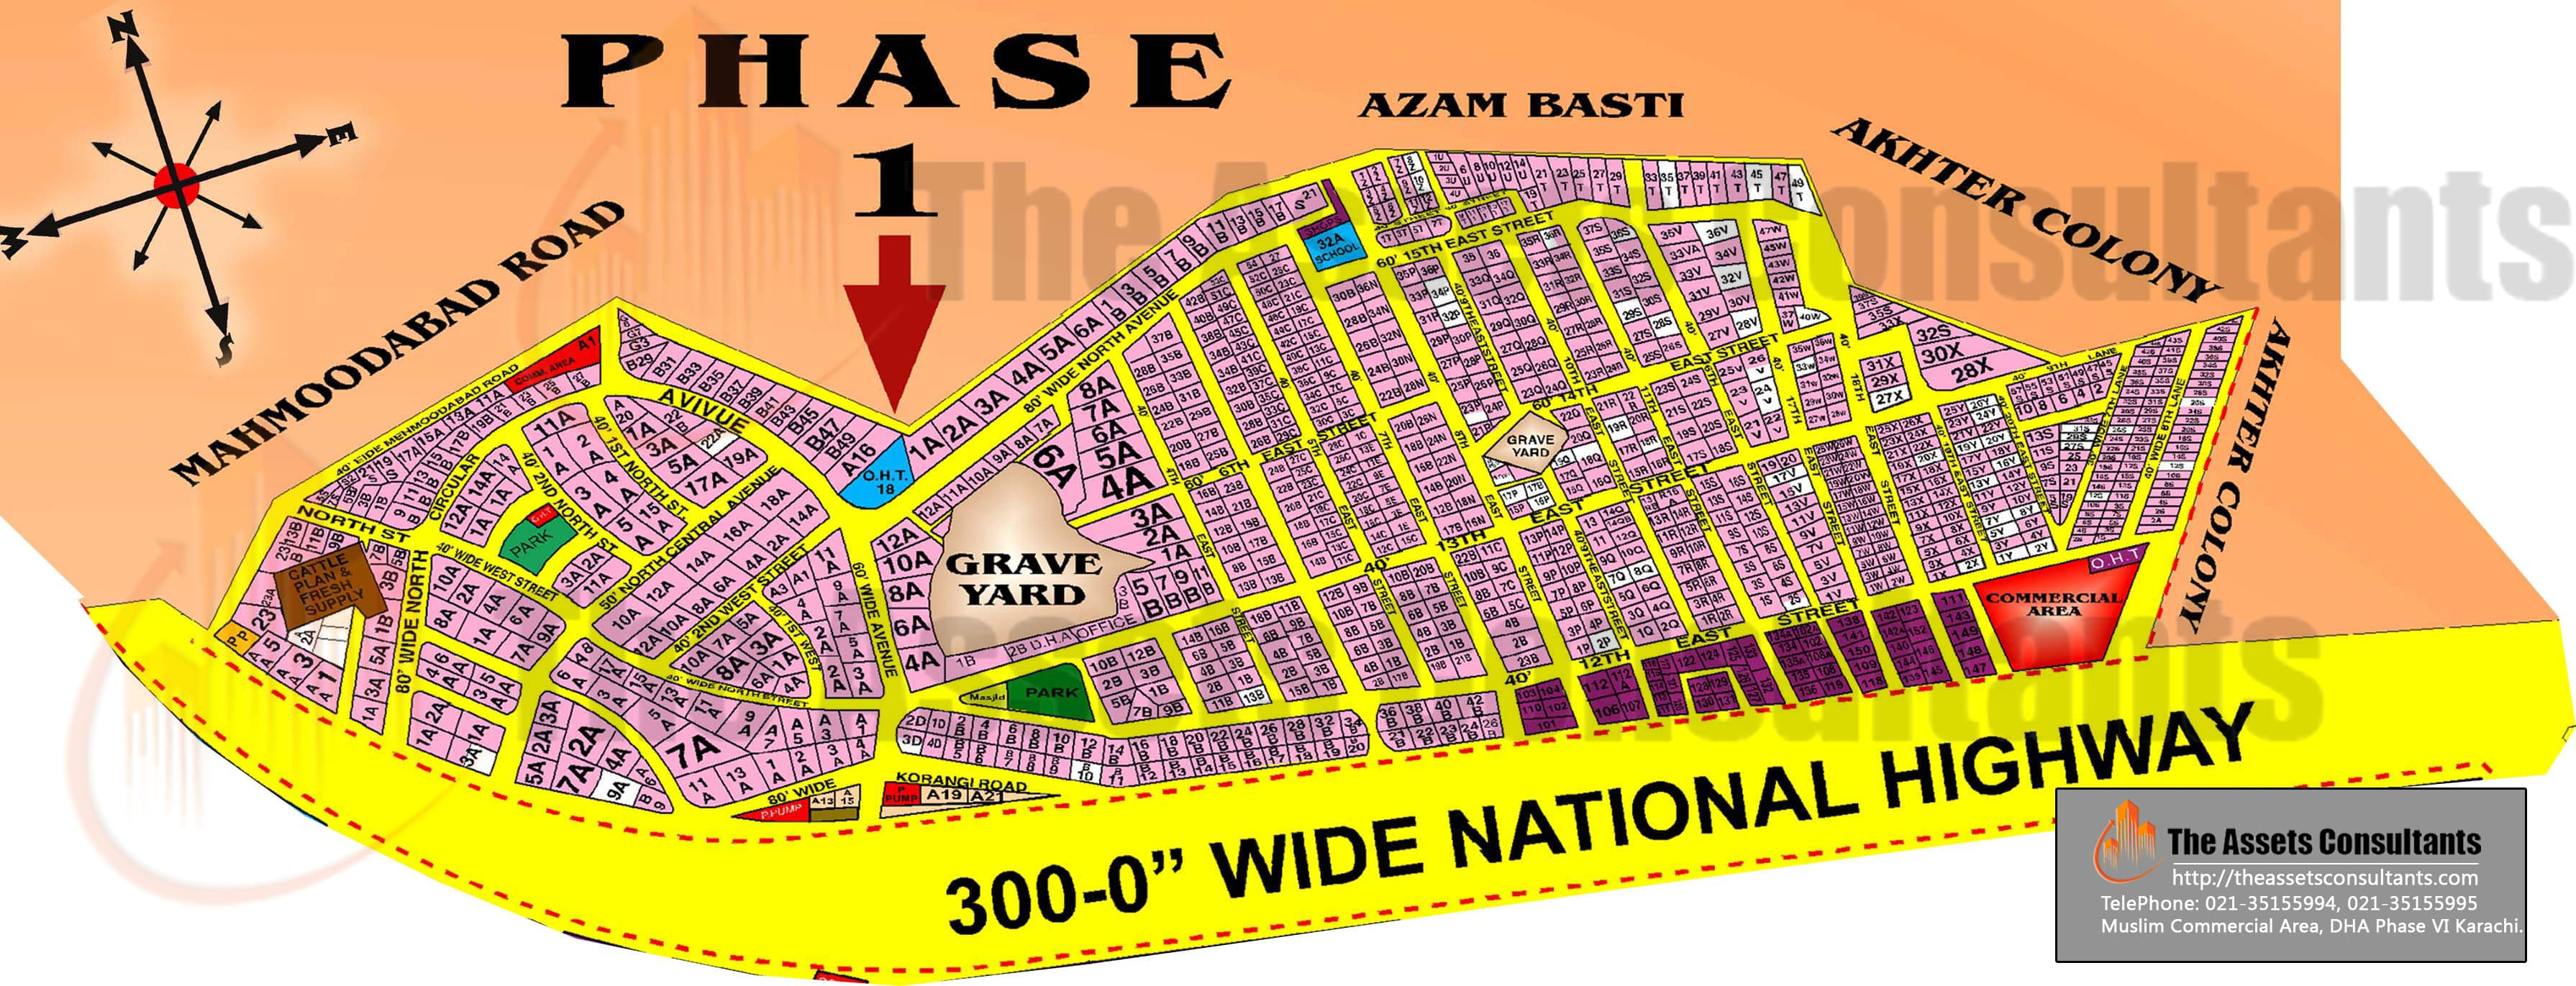 dha-phase1-map-karachi